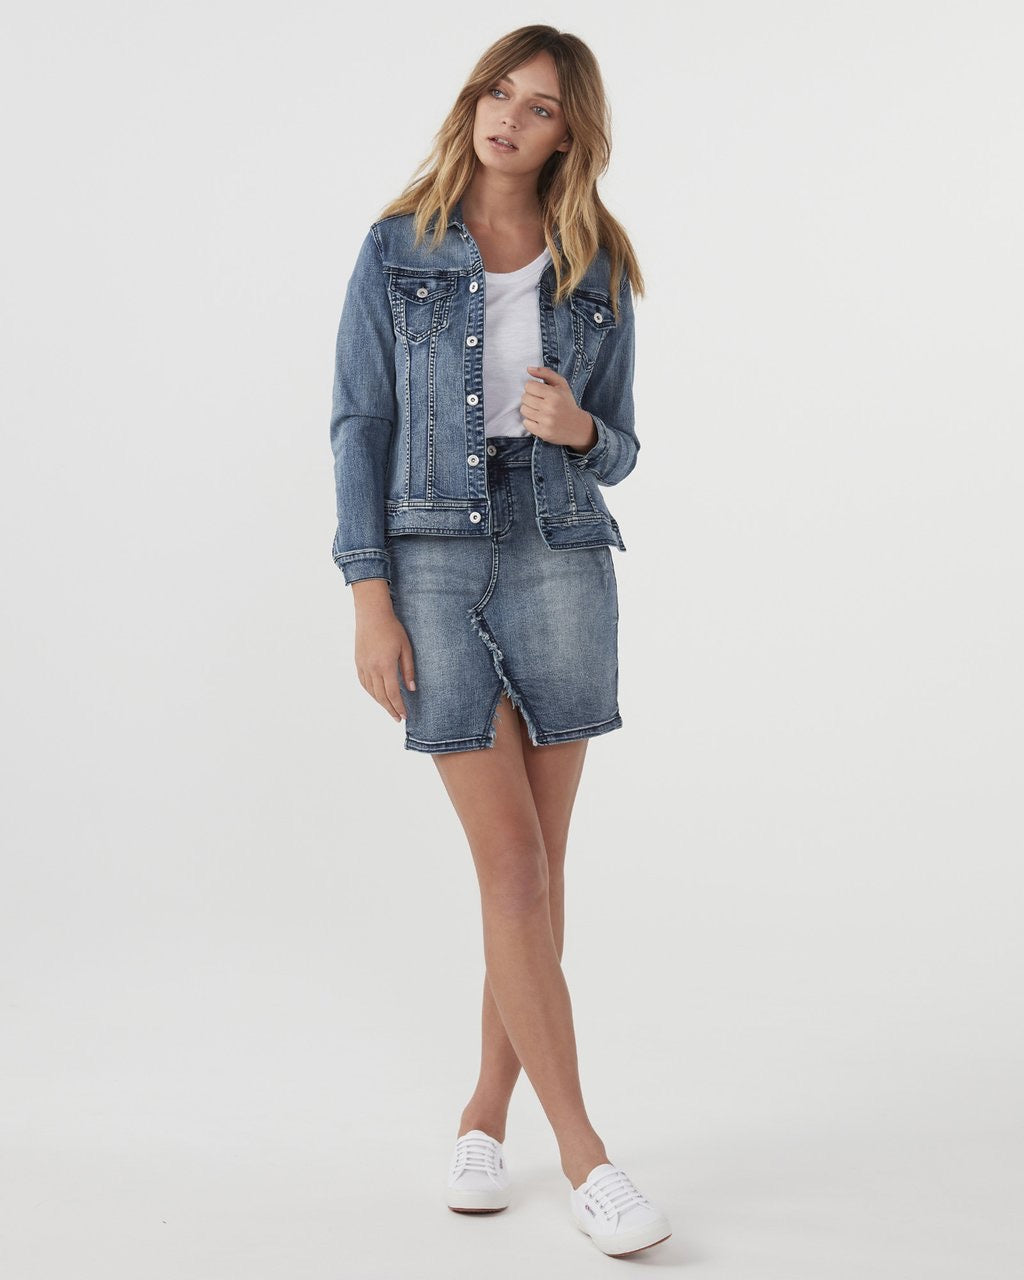 Jac+Mooki Stonewash Denim Jacket